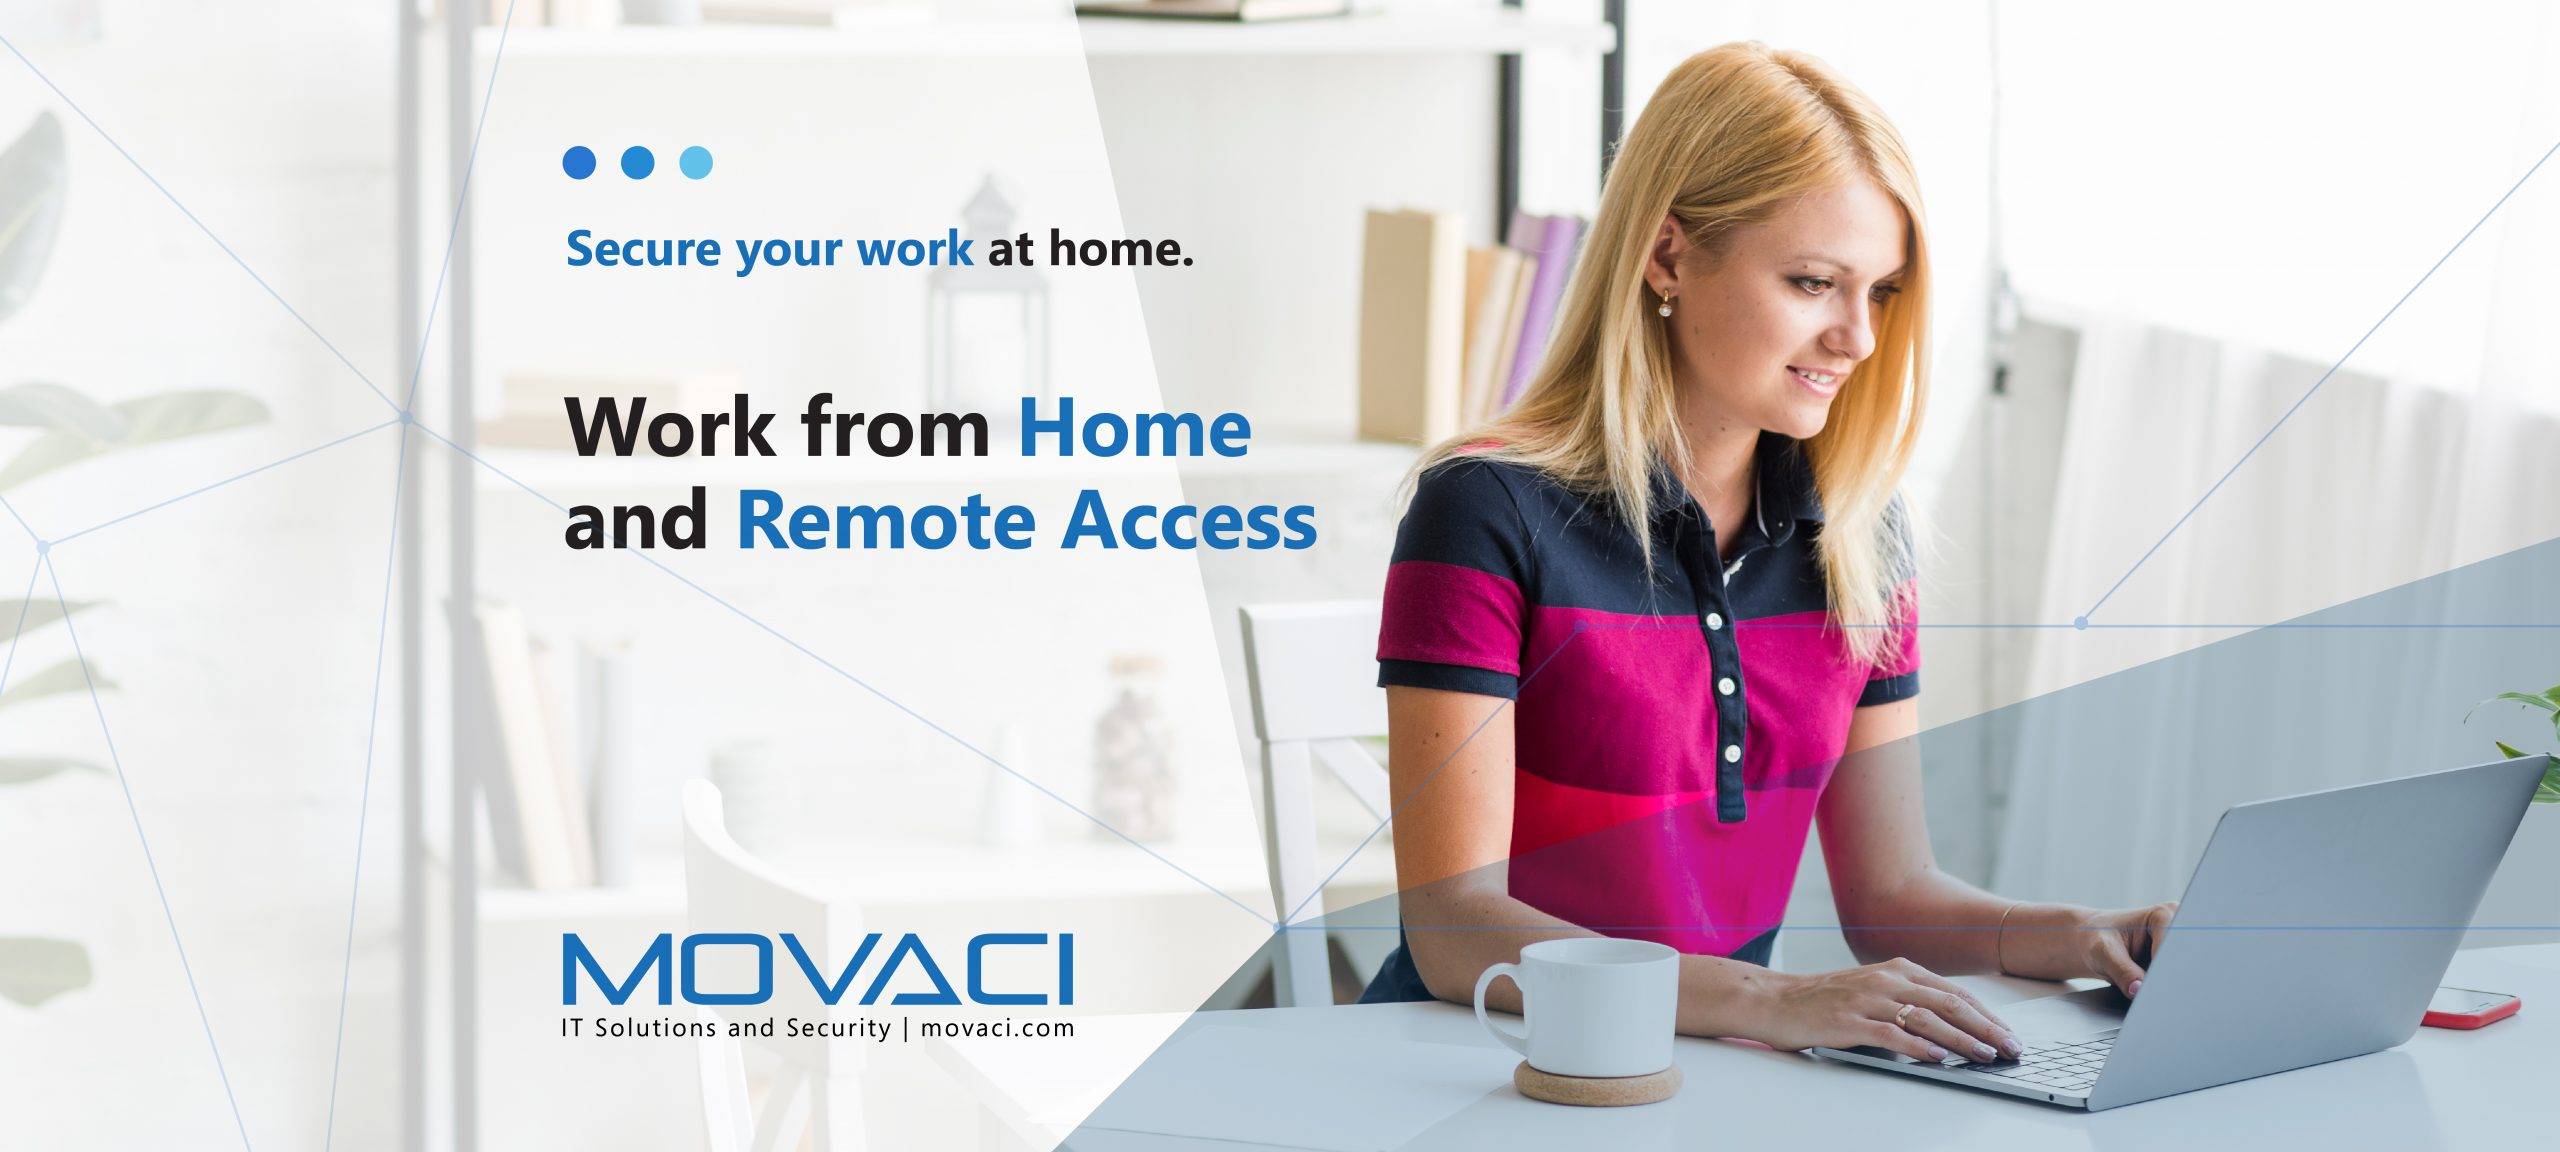 Work from Home and Remote Access 1